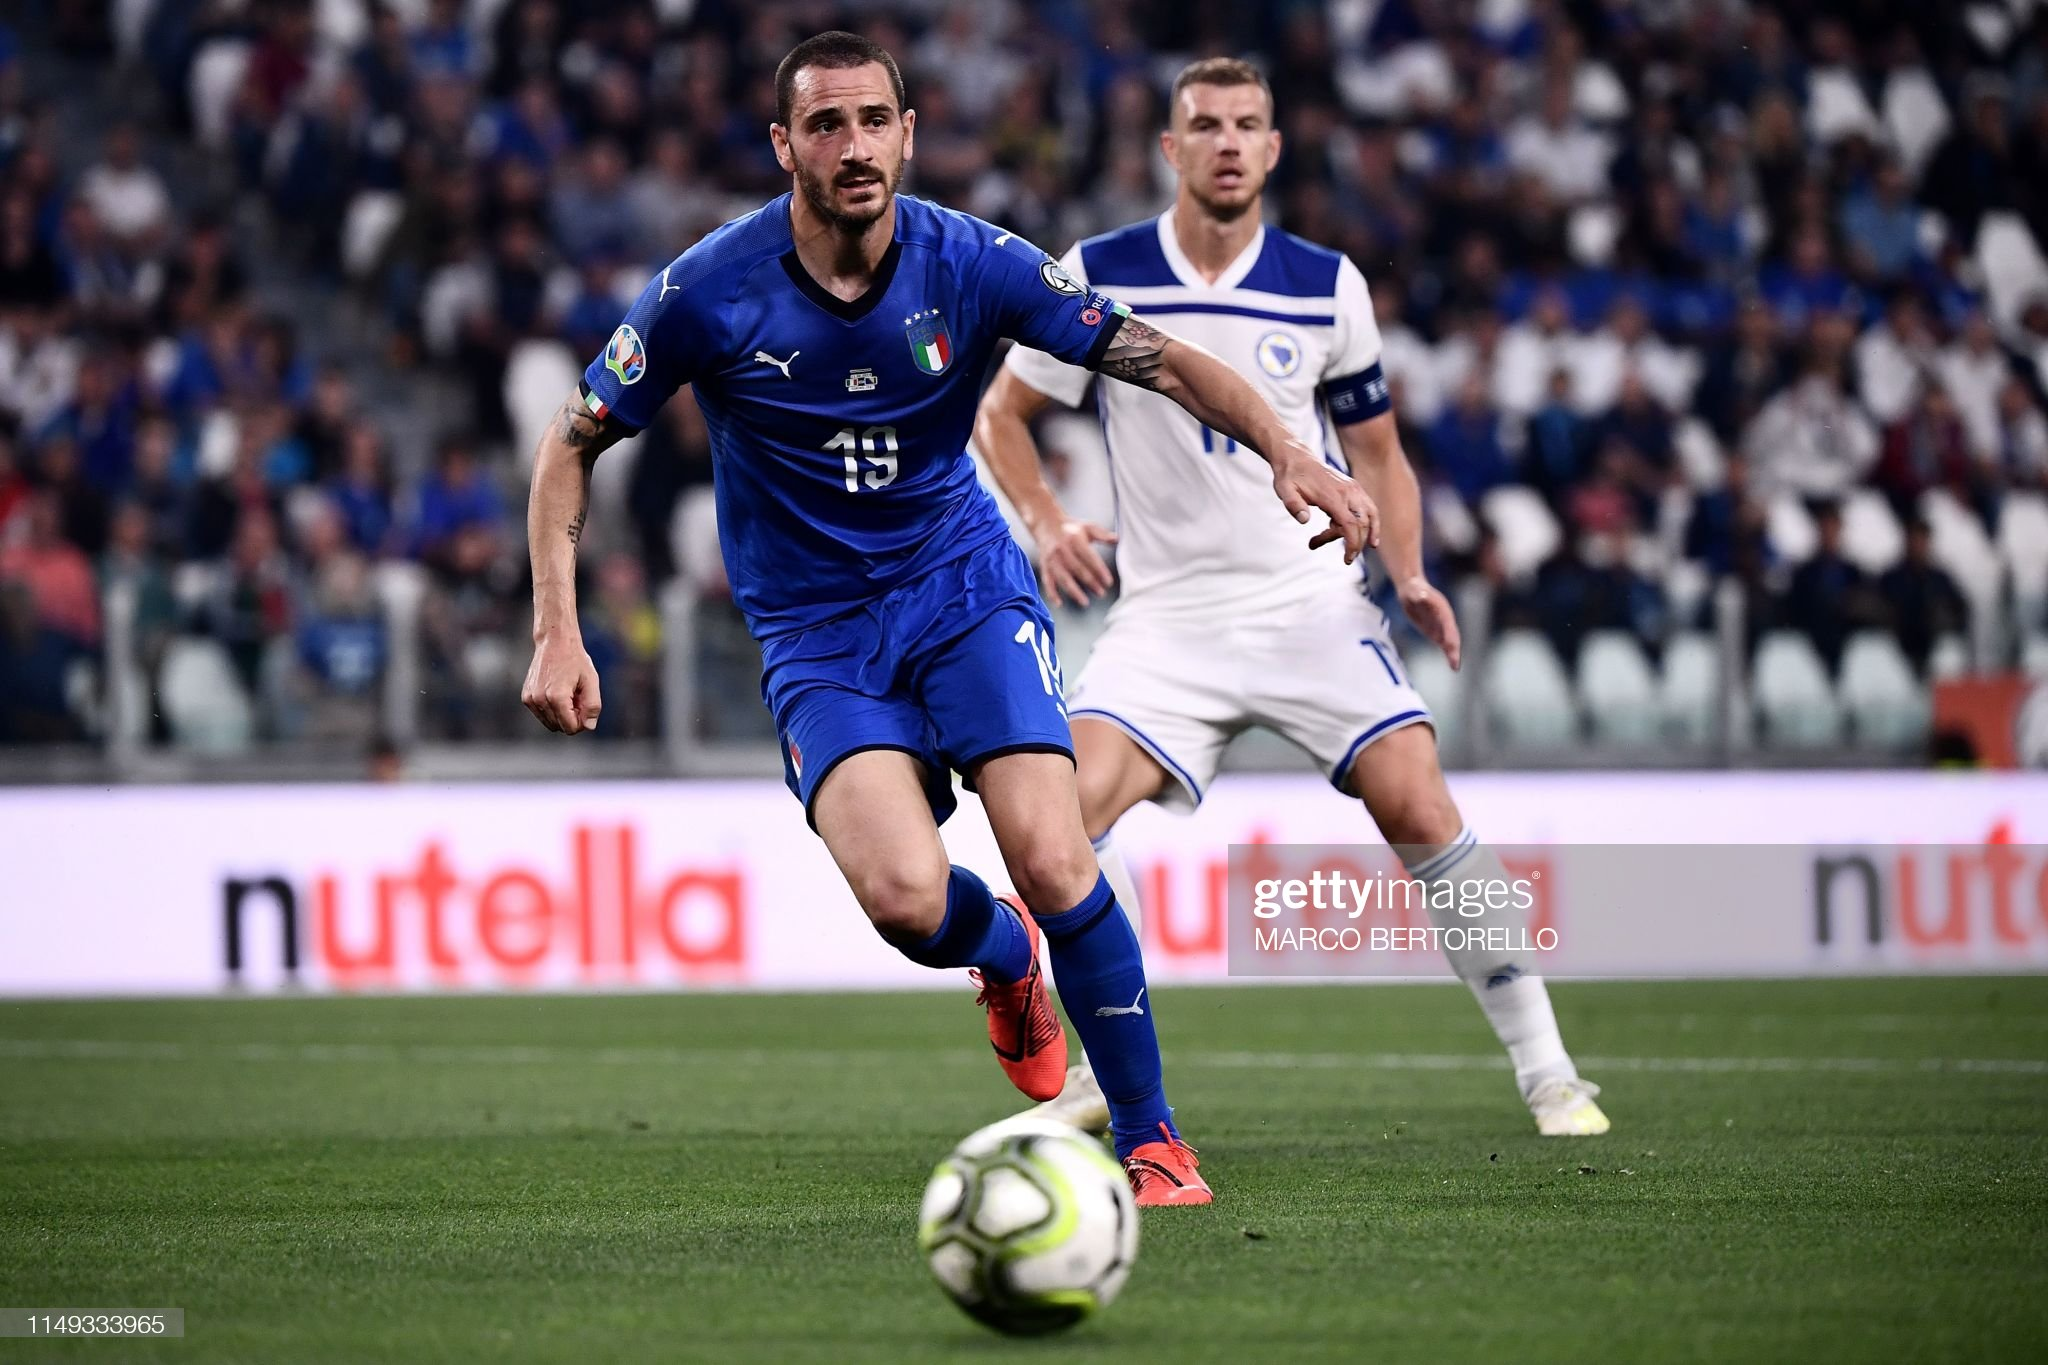 Italy vs Bosnia & Herzegovina preview, prediction and odds